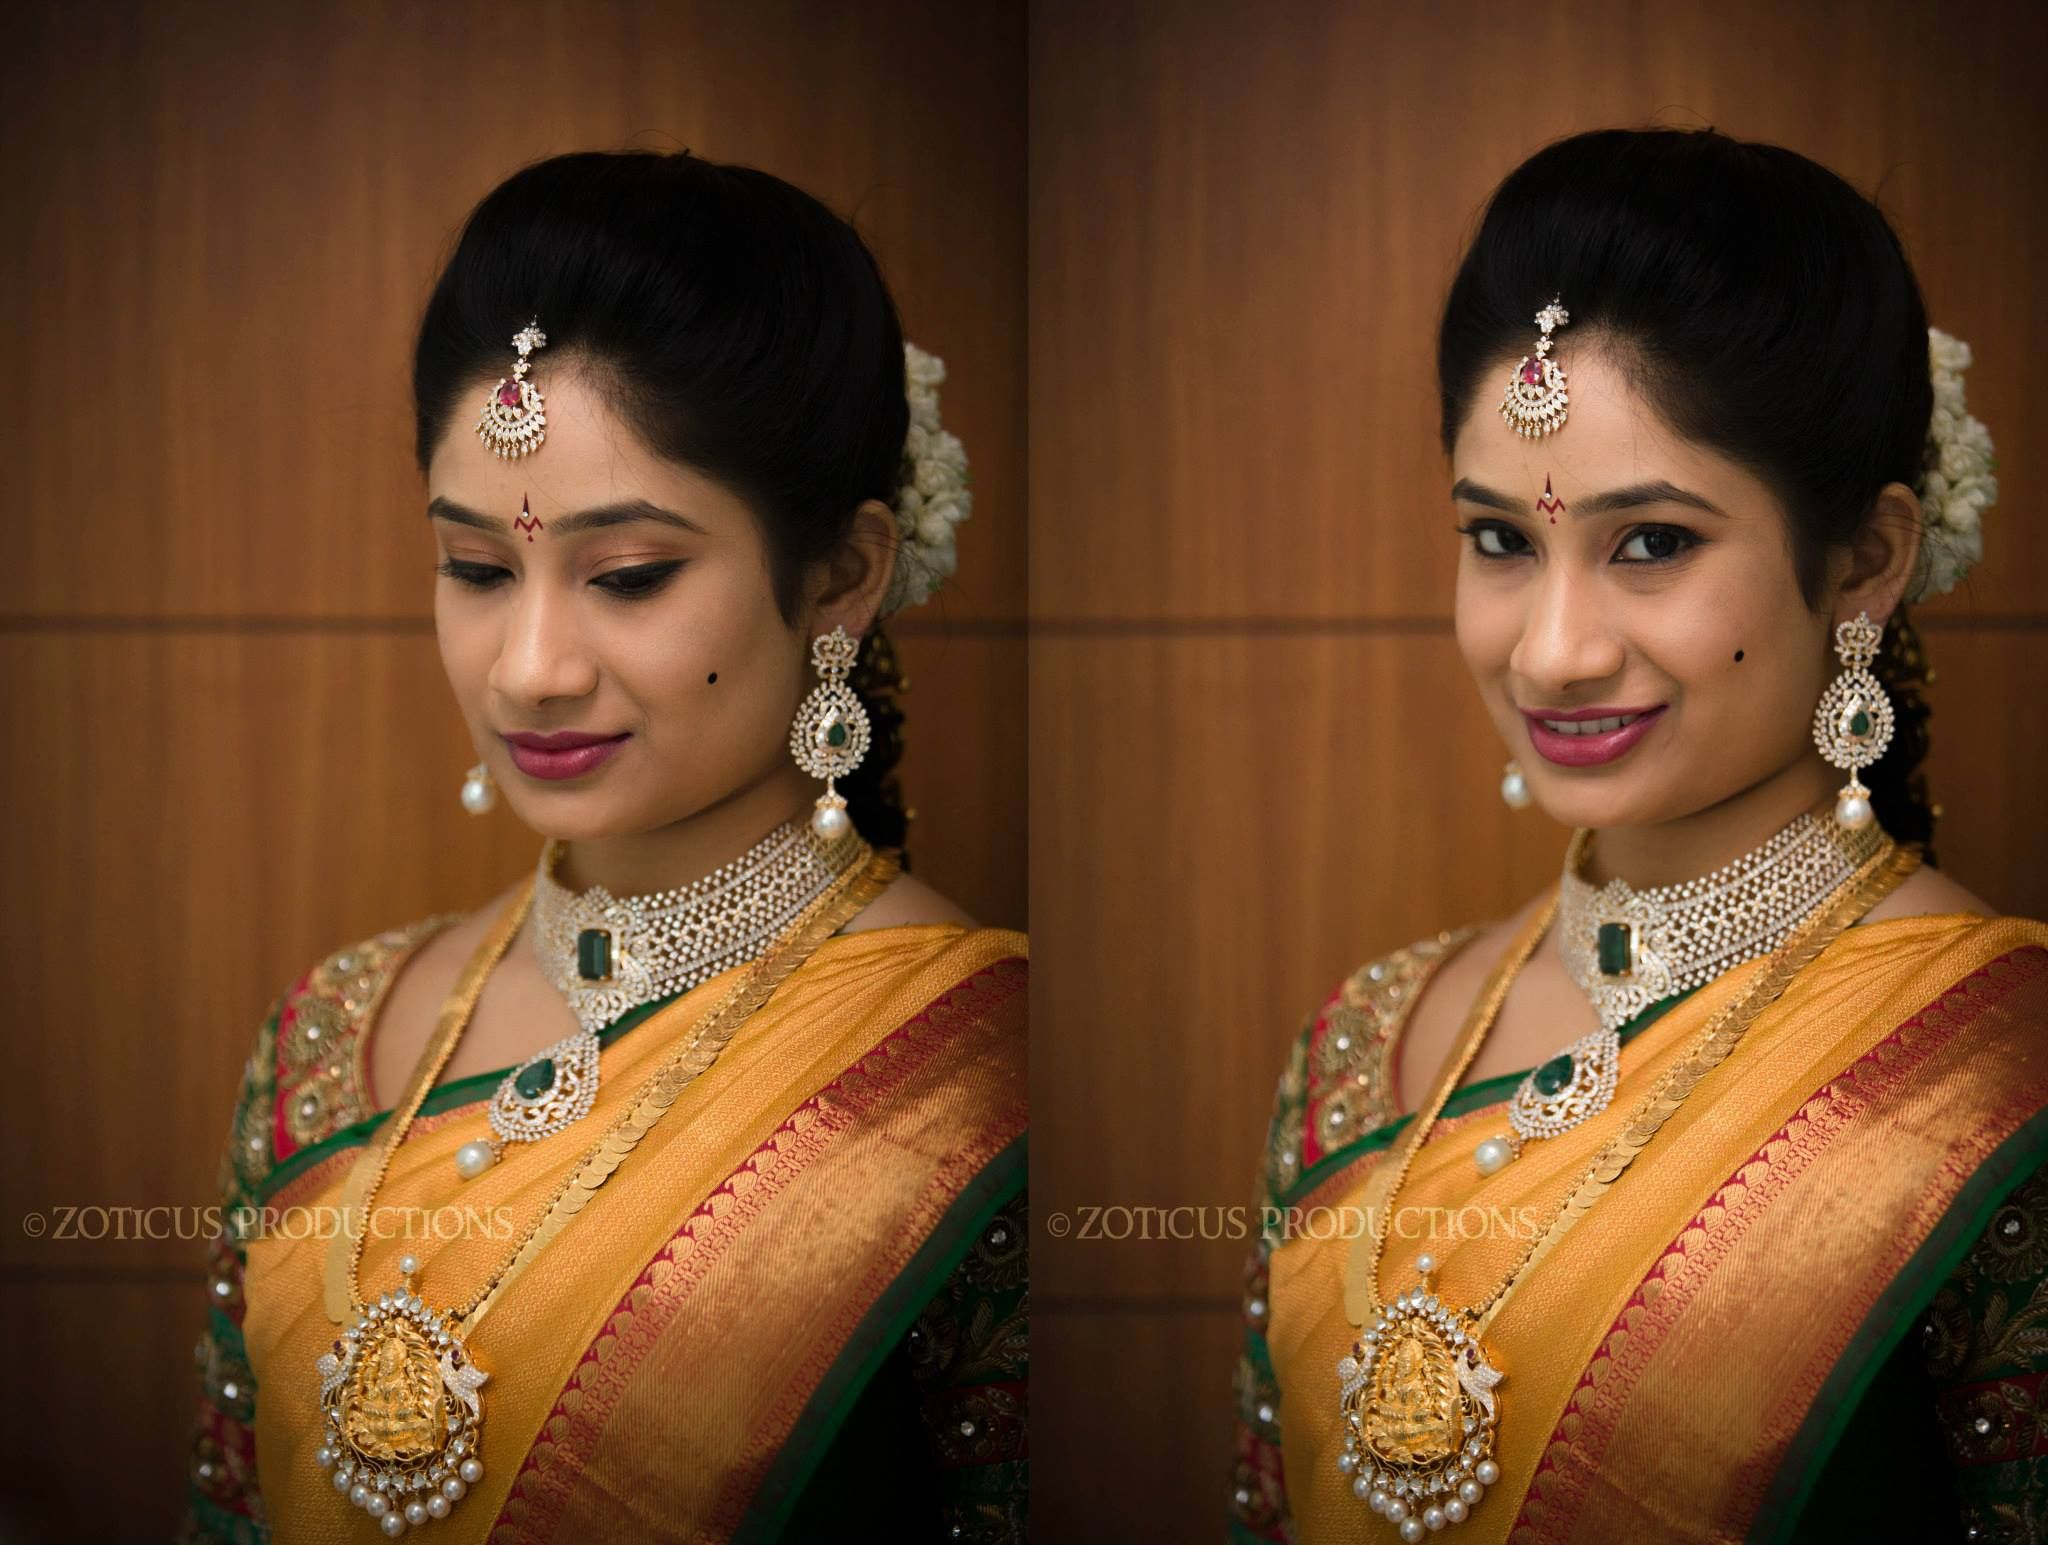 traditional south indian bride wearing bridal saree, jewellery and